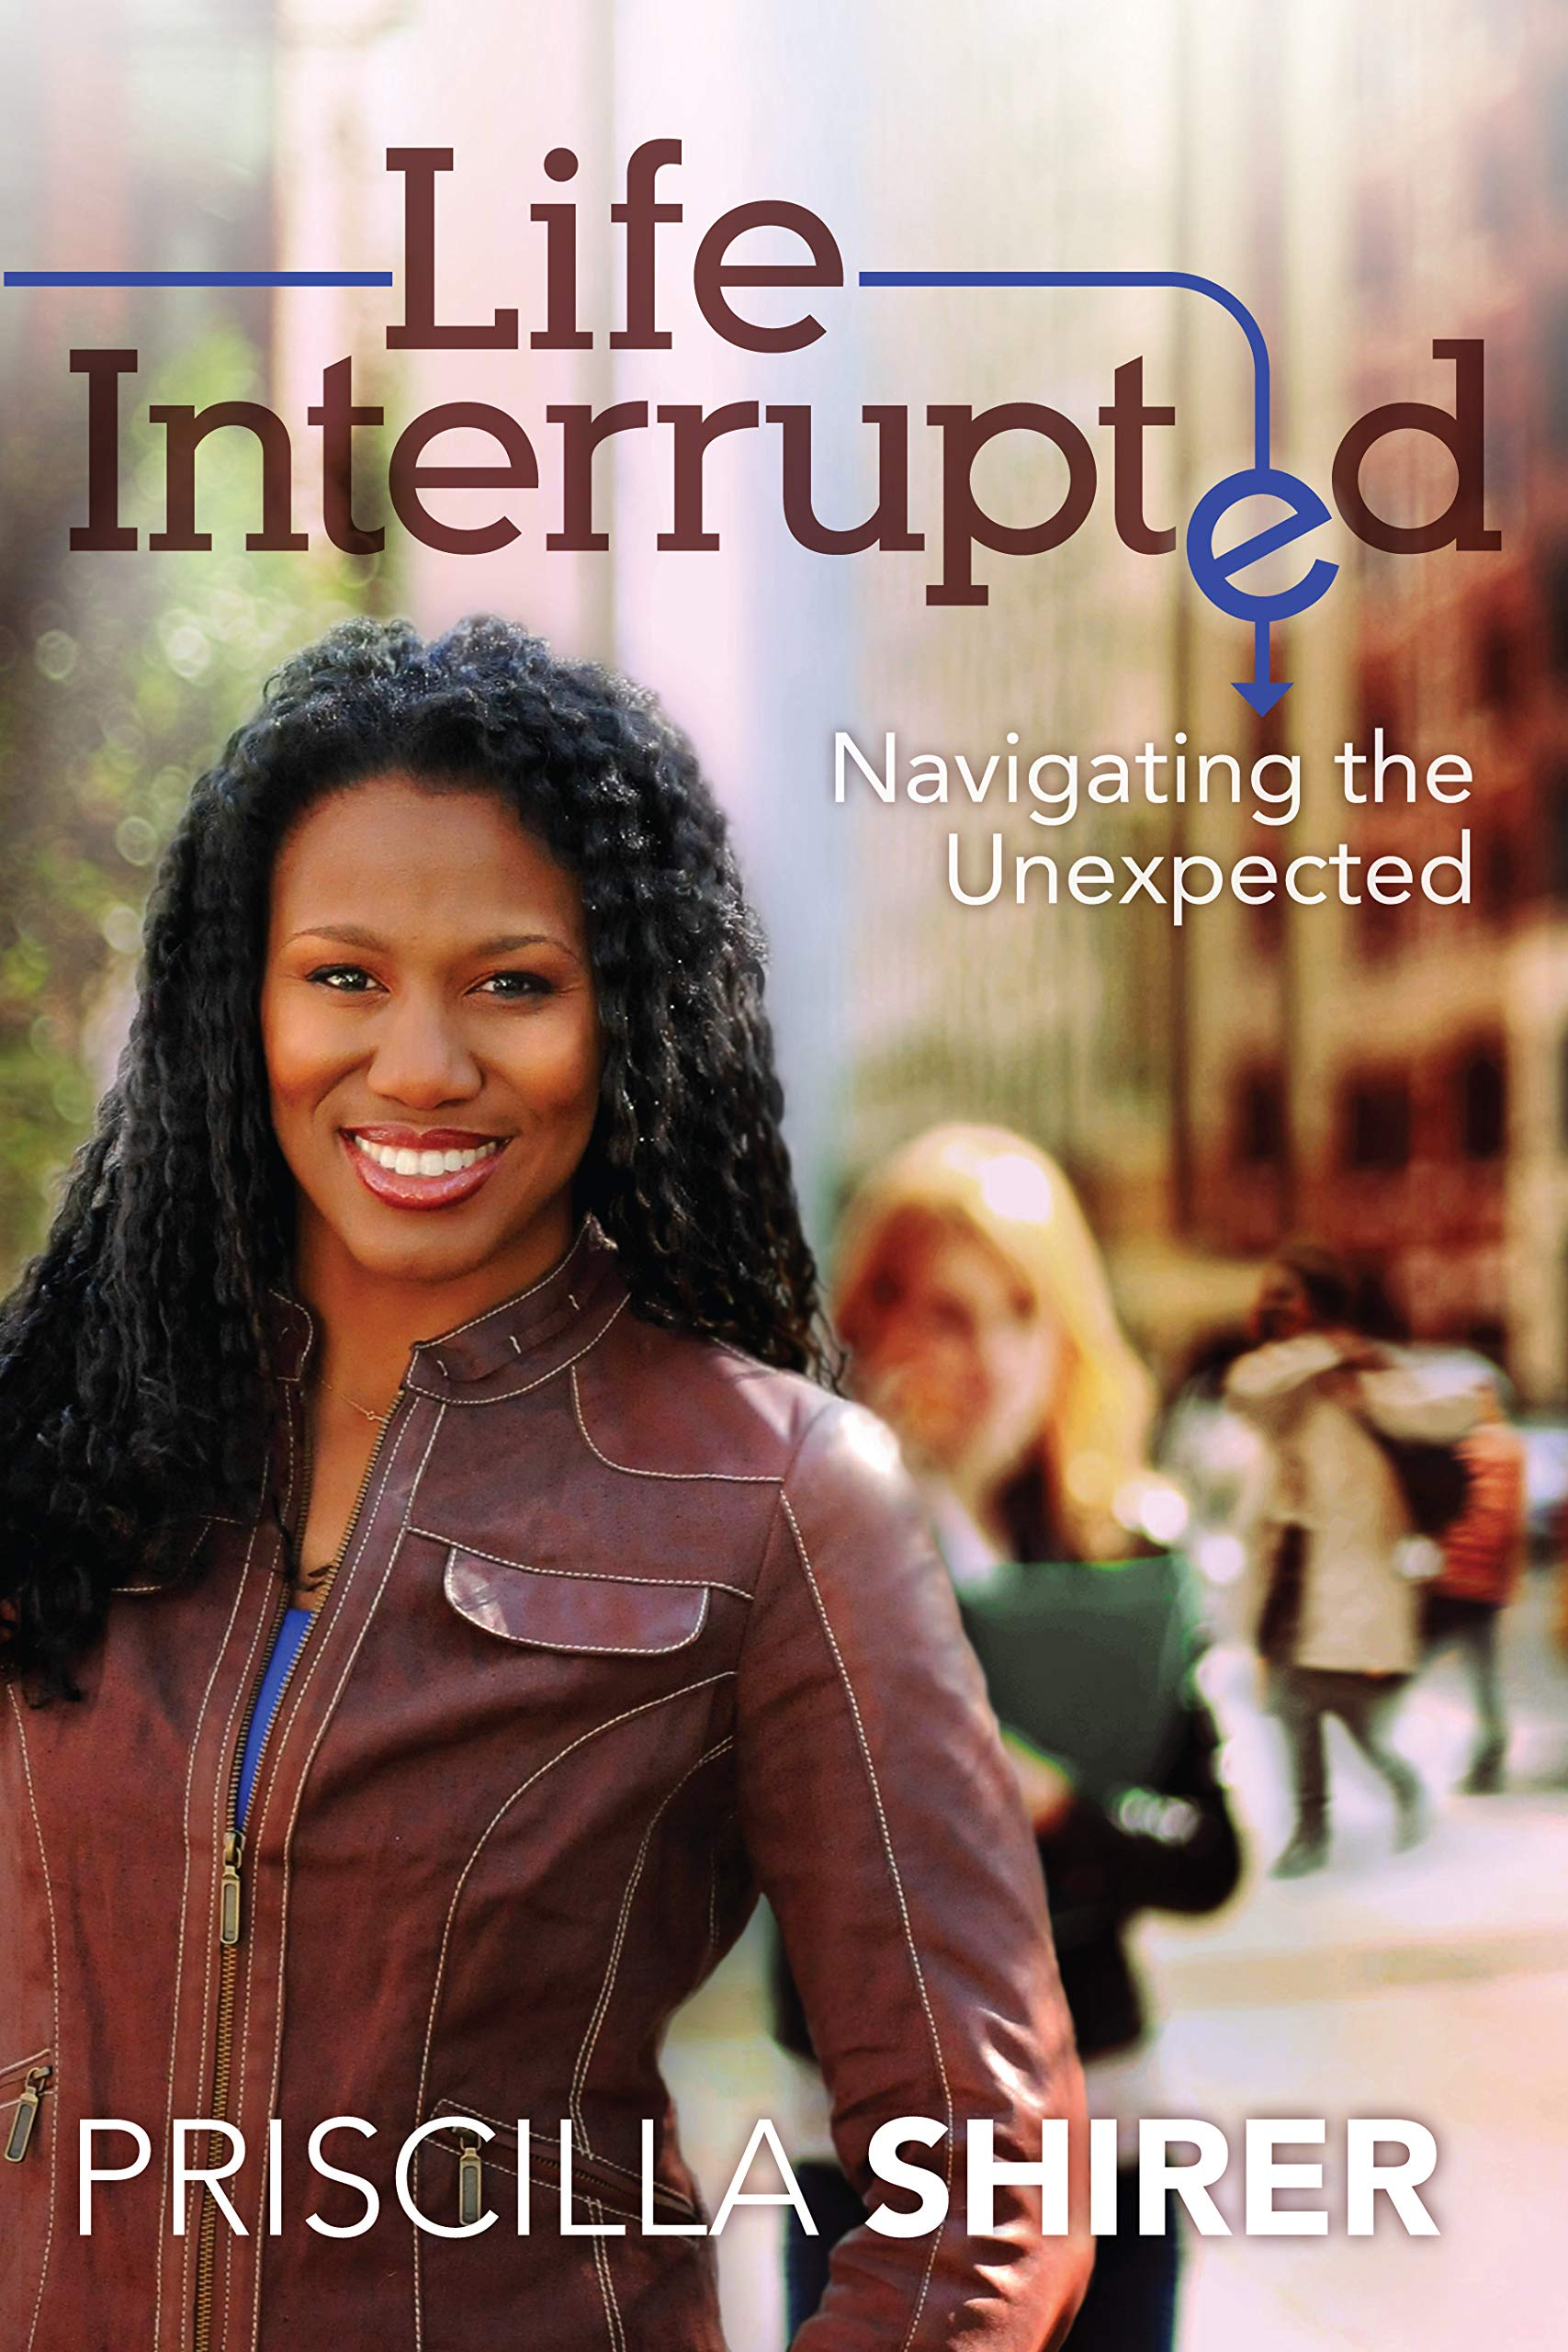 Life Interrupted: Navigating the Unexpected: Priscilla Shirer:  9781433670459: Amazon.com: Books